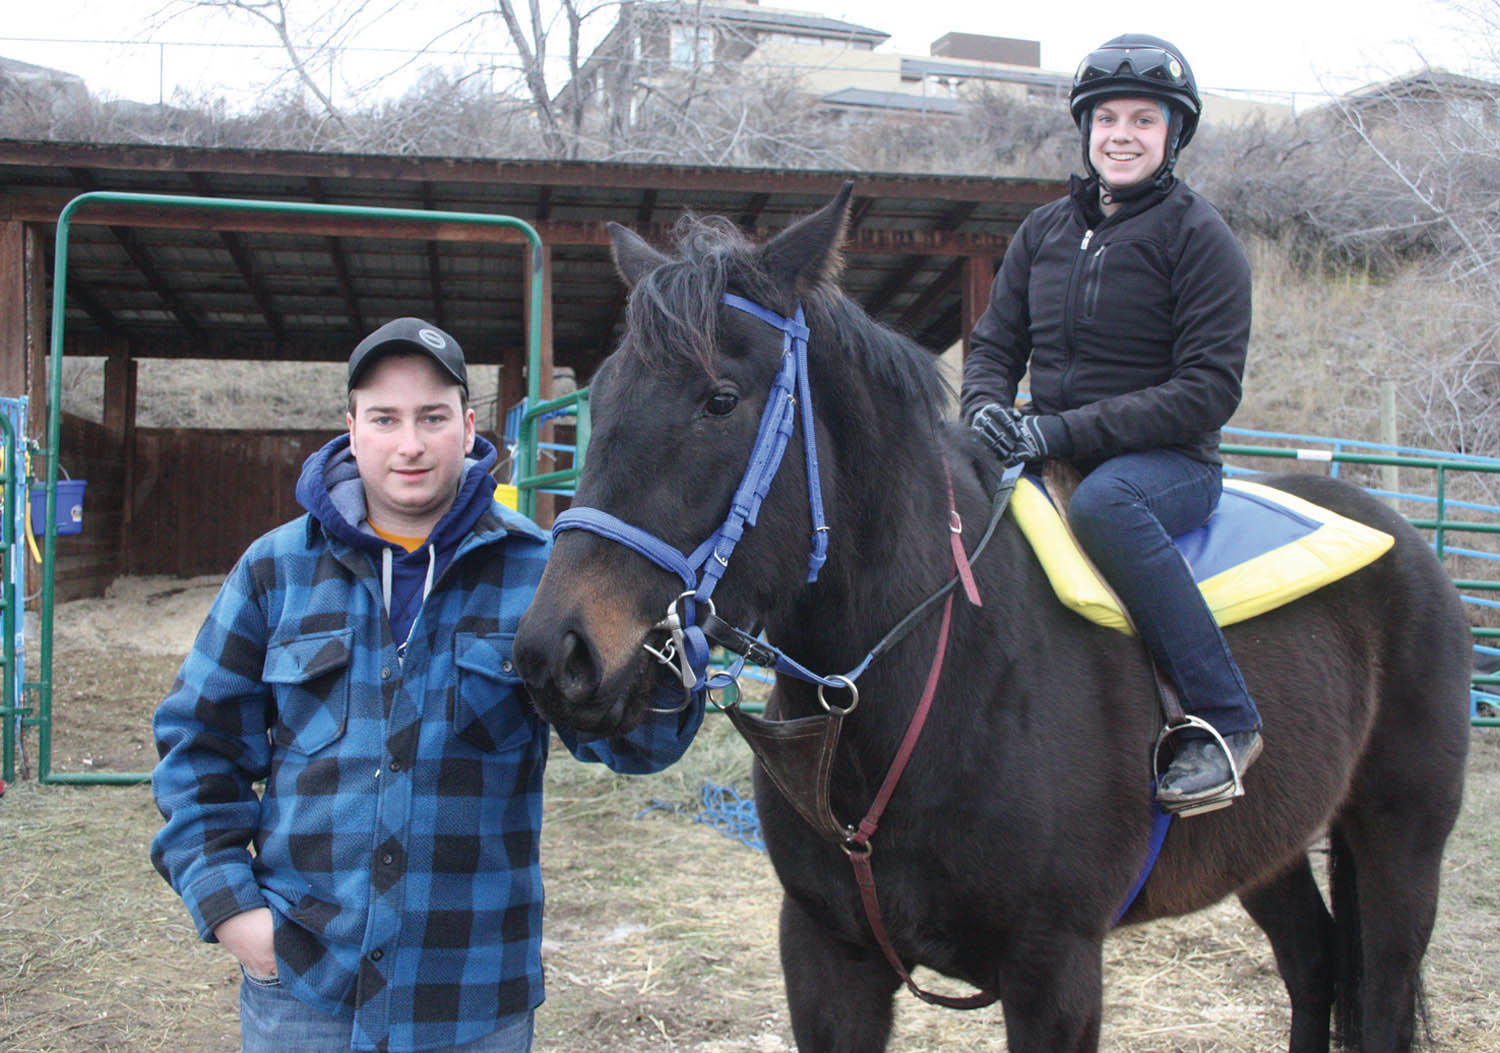 Saskatoon's Isabelle Chloe Wenc, 21, recently left Osoyoos and the Desert Park horse training facility to head to Edmonton, where she will compete as a professional jockey at Northlands Racetrack. Chloe-Wenc is seen with her boyfriend and trainer Colin Ganter. (Keith Lacey photo)